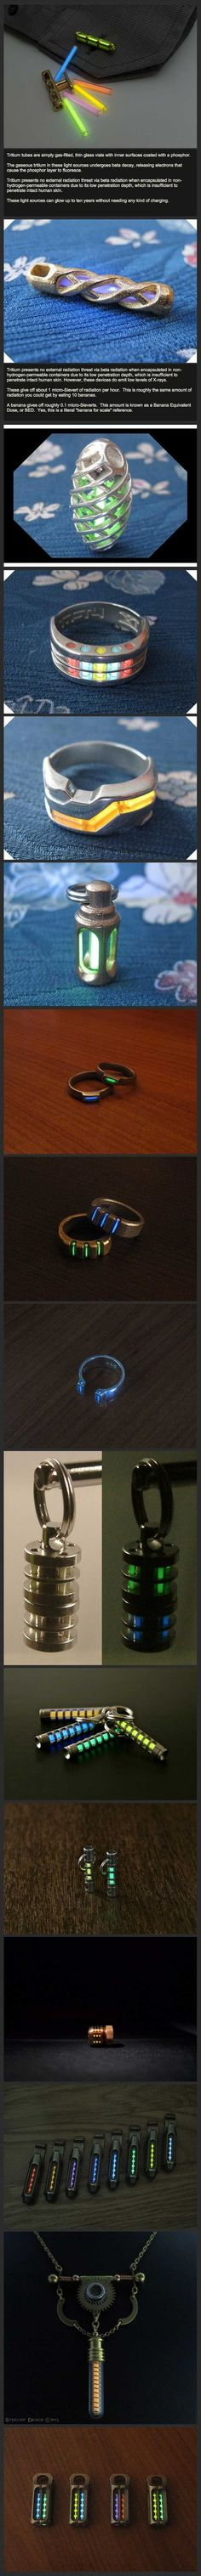 Tritium Jewelry. Cool as hell. Gadgets And Gizmos, Edc Gadgets, Awesome Things To Buy, Things I Need To Buy, Good Things, Cool Stuff, Stuff Stuff, Stuff To Buy, Random Stuff